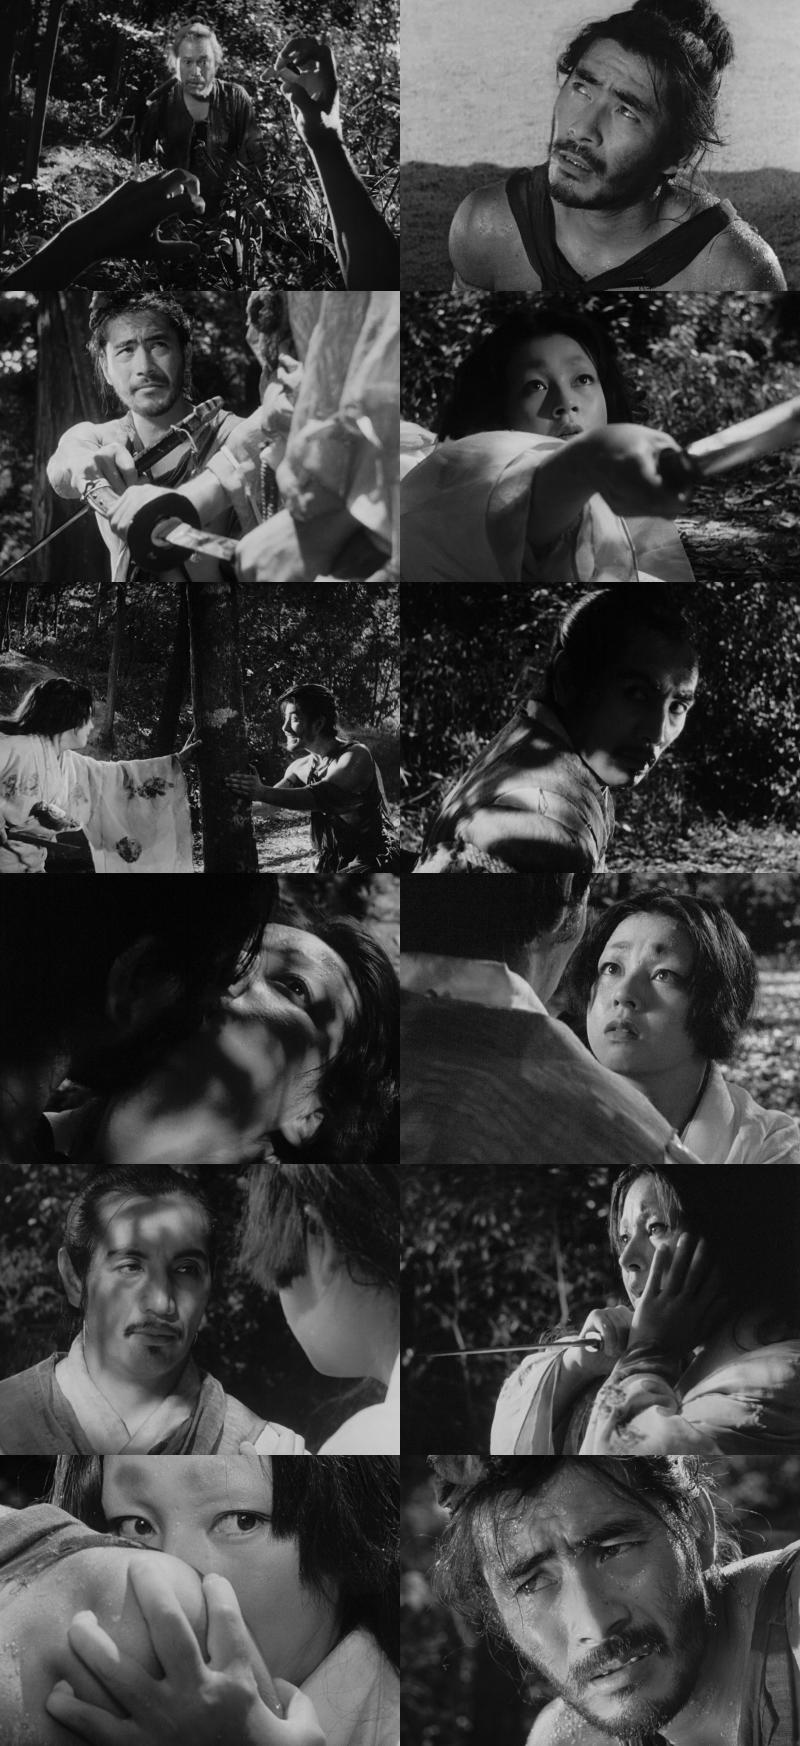 http://watershade.net/public/rashomon.jpg